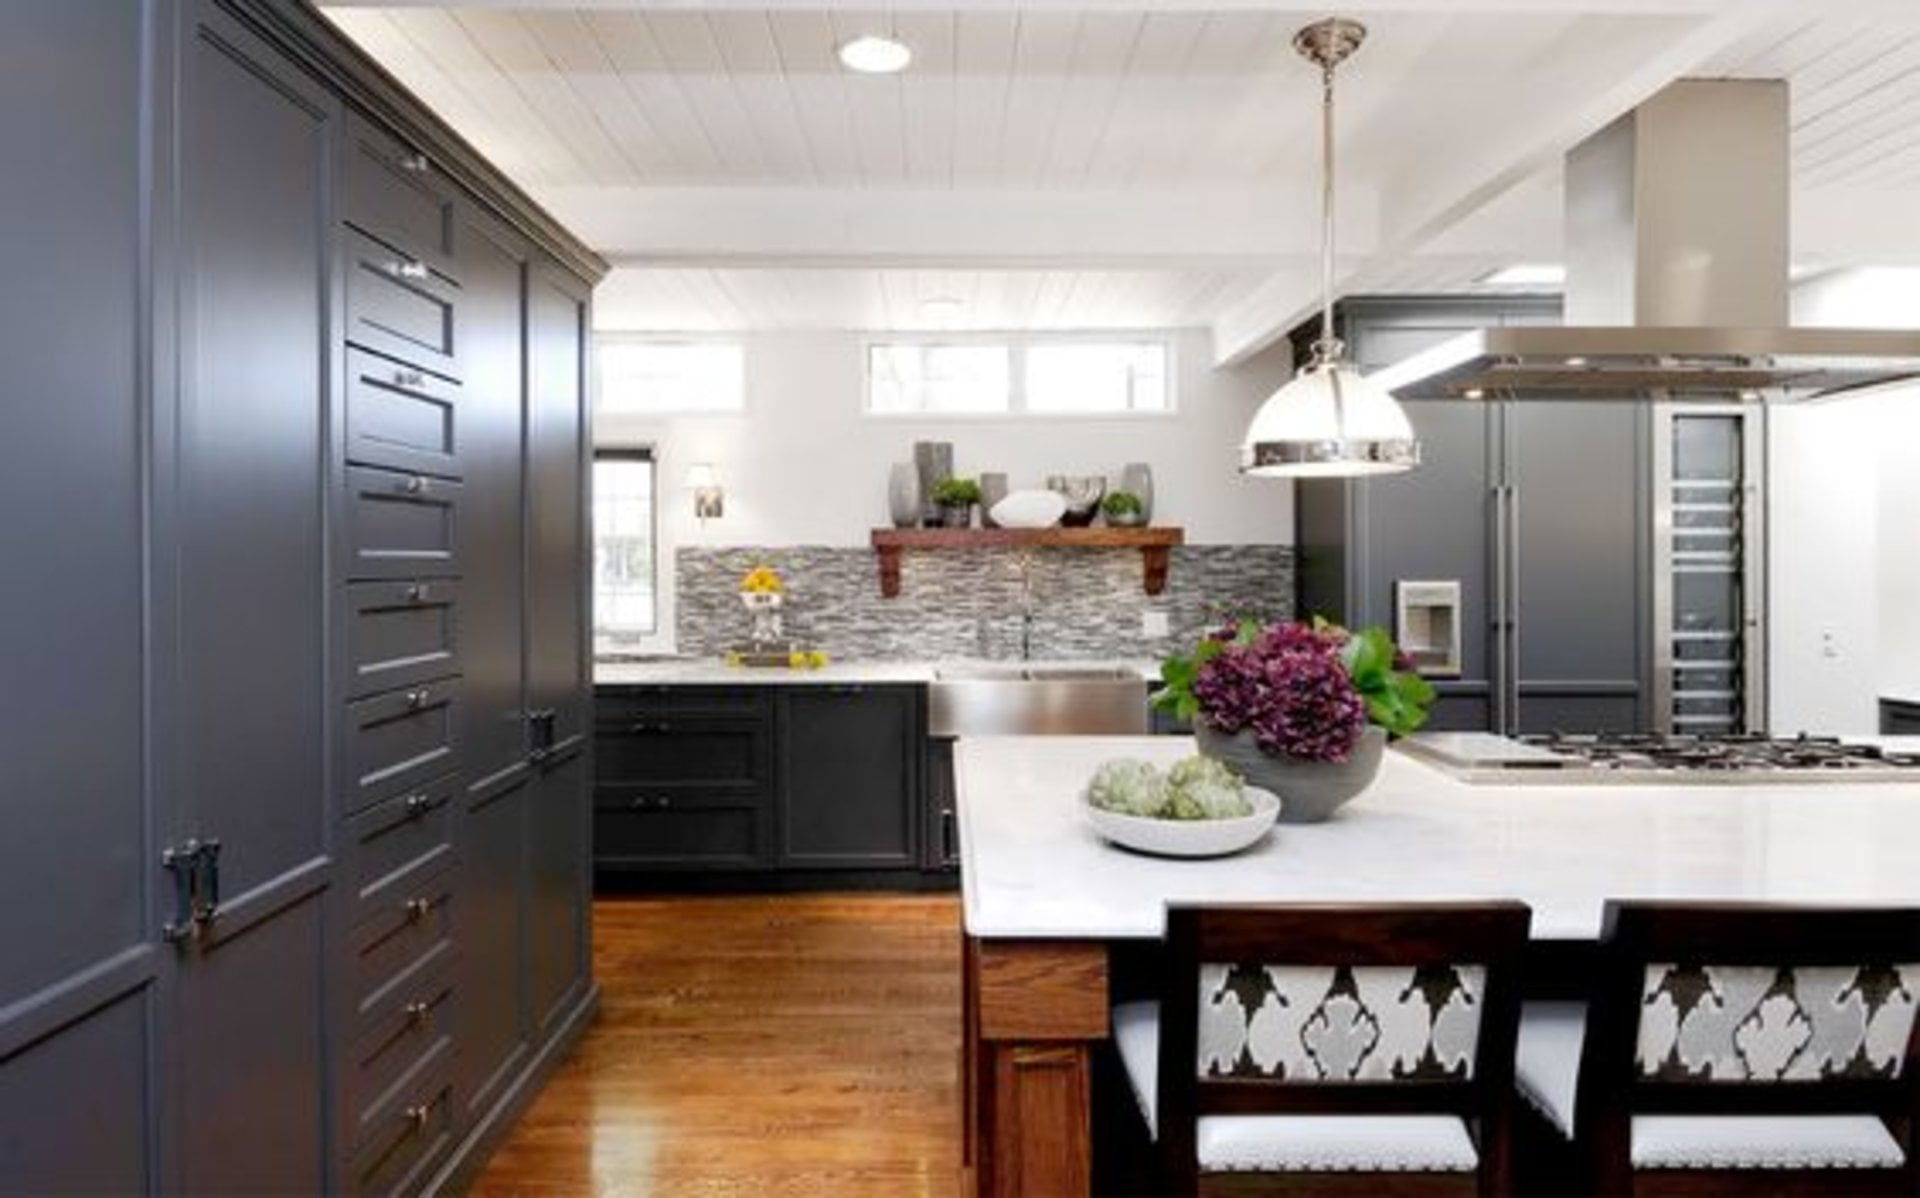 Charmant Shaker Style In The Home   Kitchen Cabinets. Atmosphere Interior Design ...